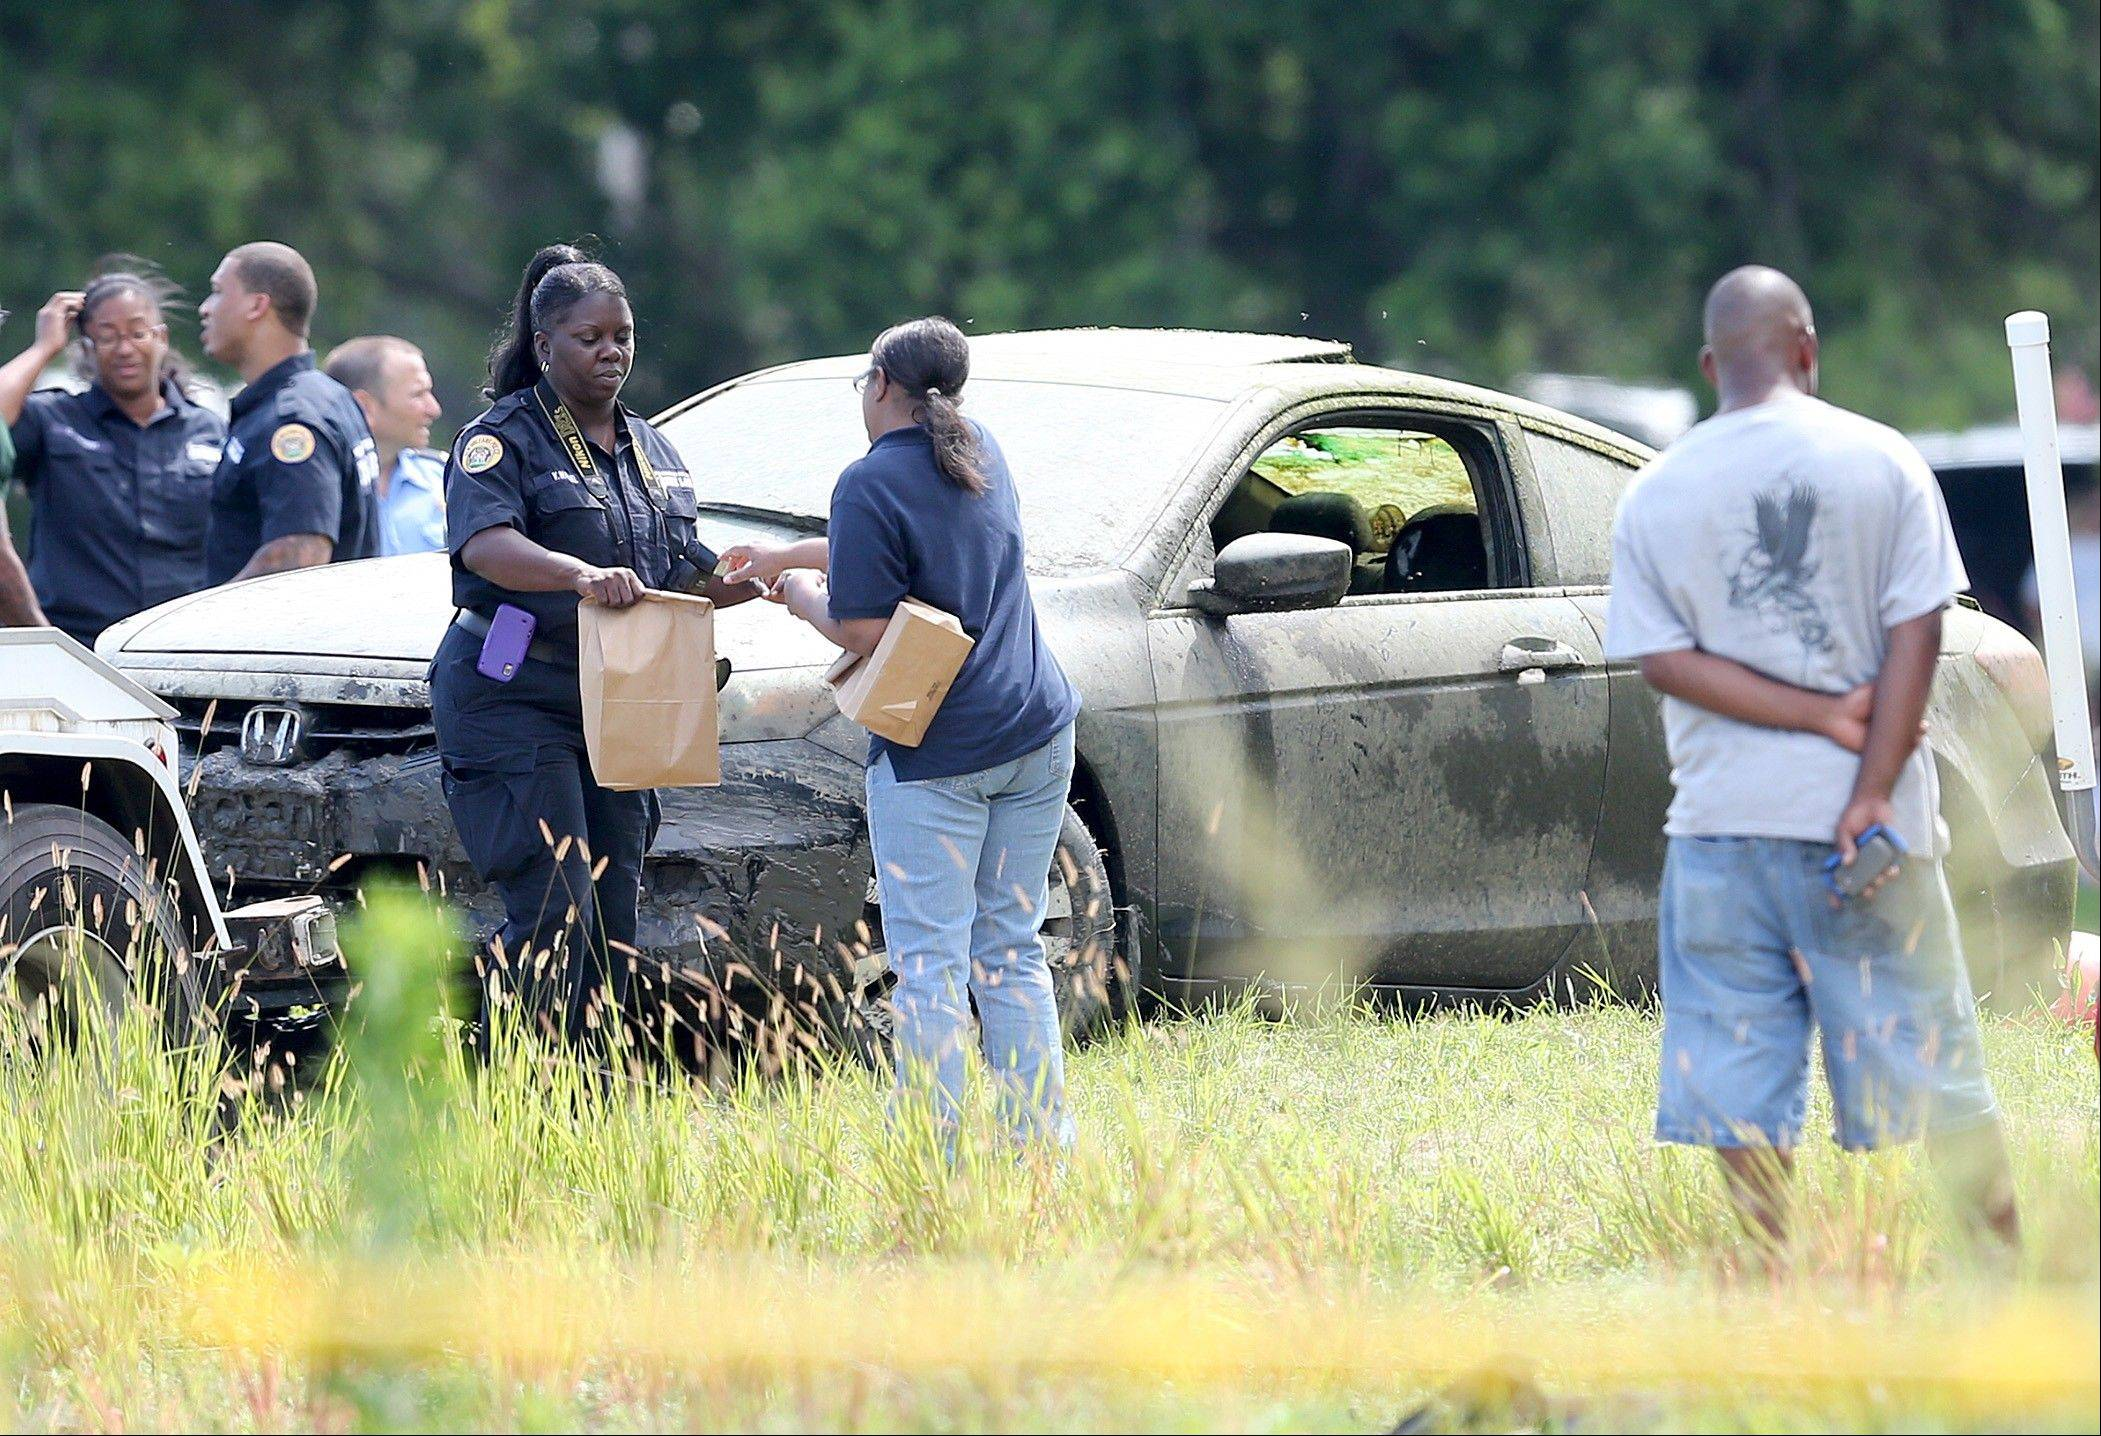 Crime scene technicians collect evidence Saturday from the Honda Accord belonging to teacher Terrilynn Monette, who has been missing since leaving a nearby bar in early March.